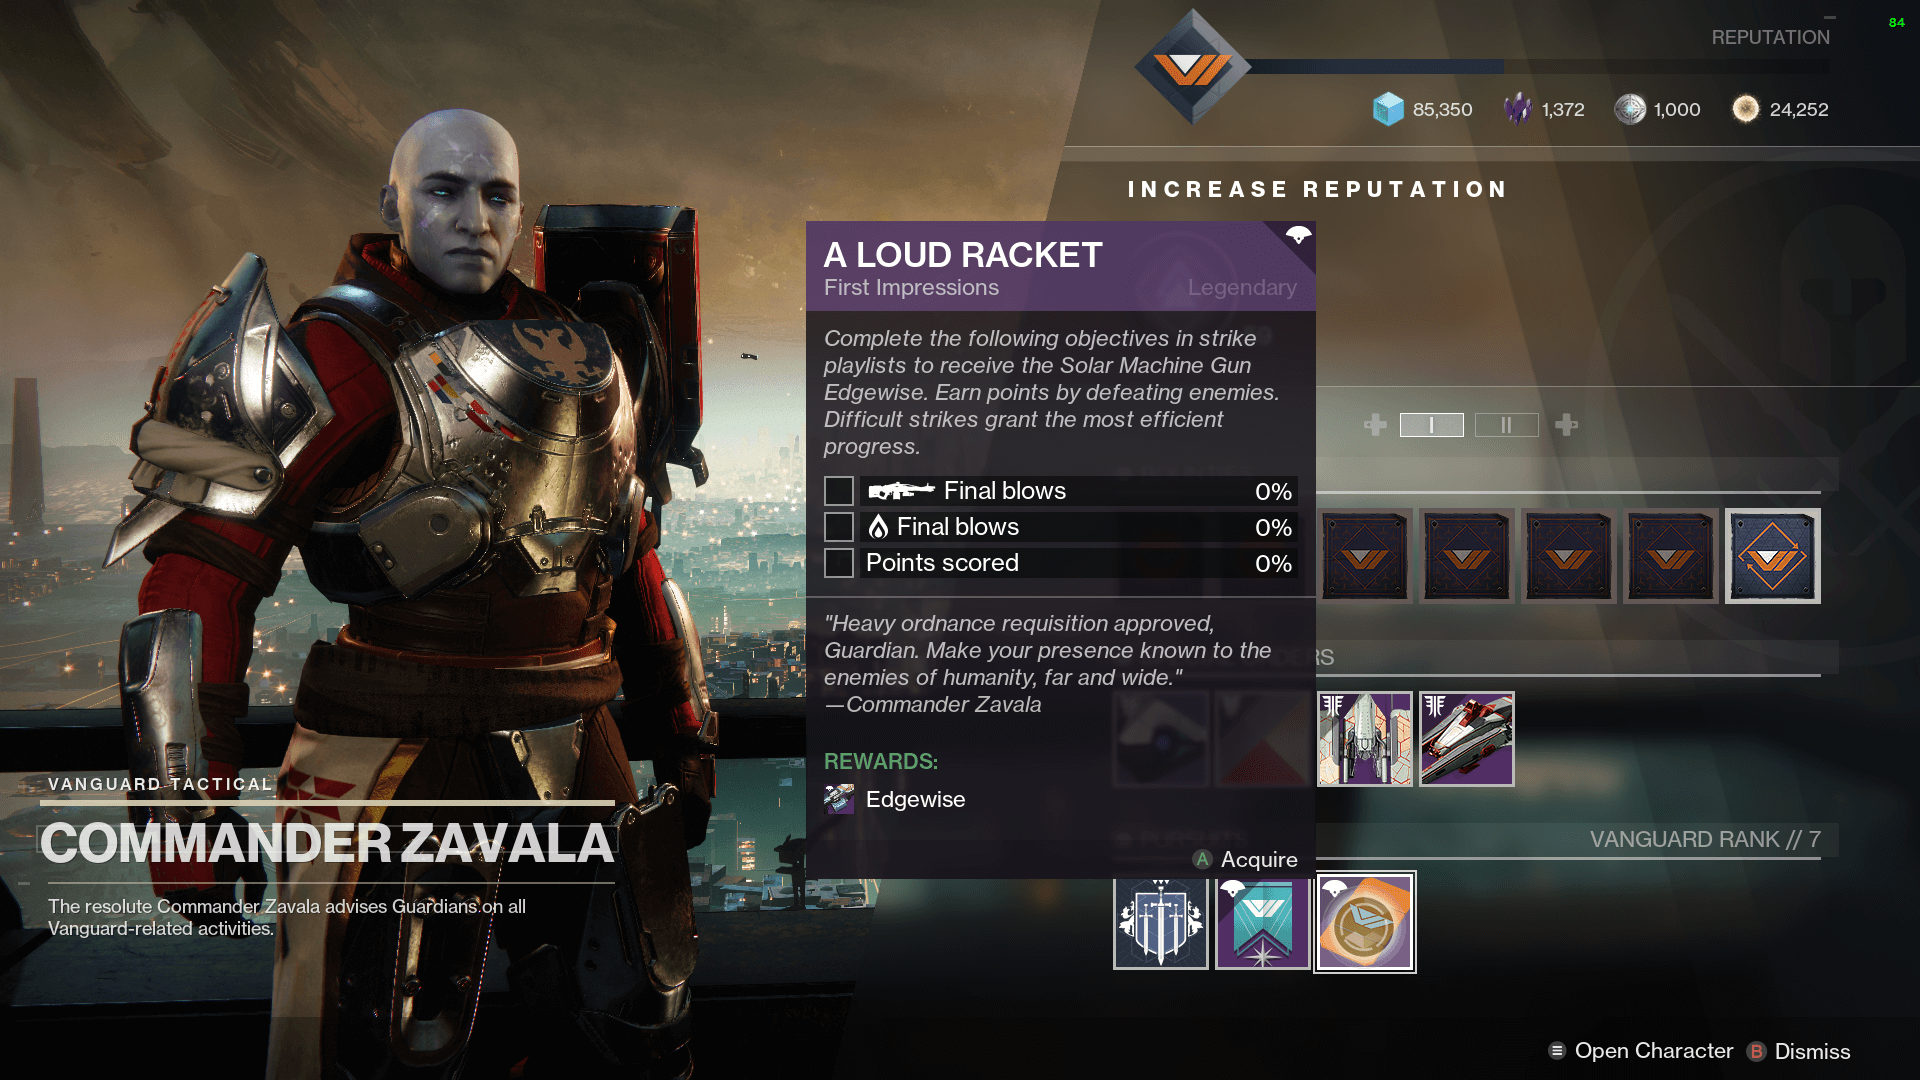 Destiny 2 - A Loud Racket quest from Commander Zavala